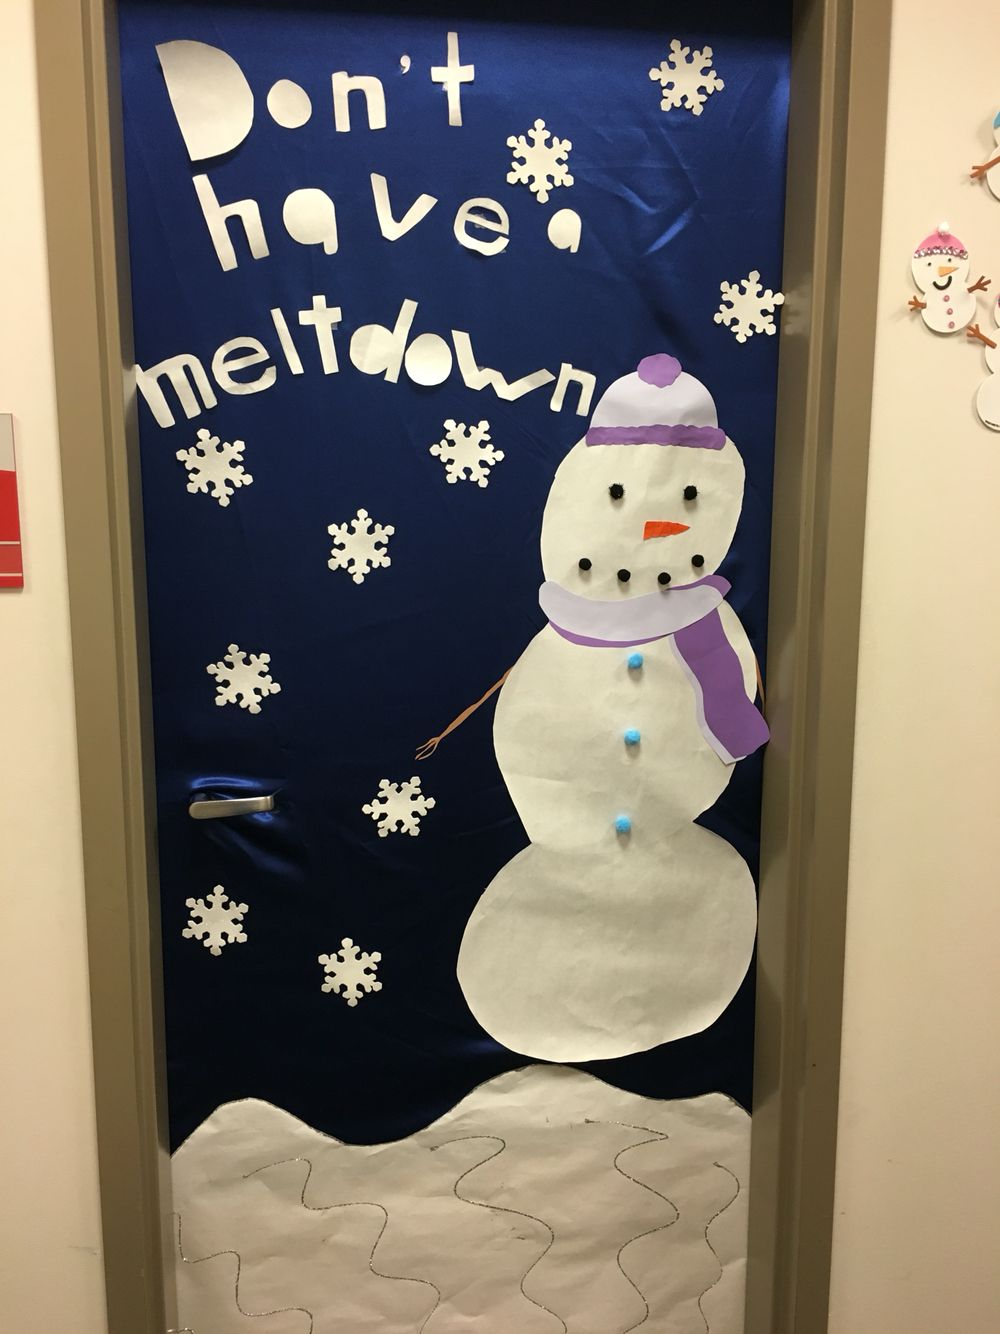 School Social Worker Door For Christmas Or Winter Add Coping Skills To Snowflakes Holiday Classroom Door Decorations Holiday Classroom Doors Coping Skills